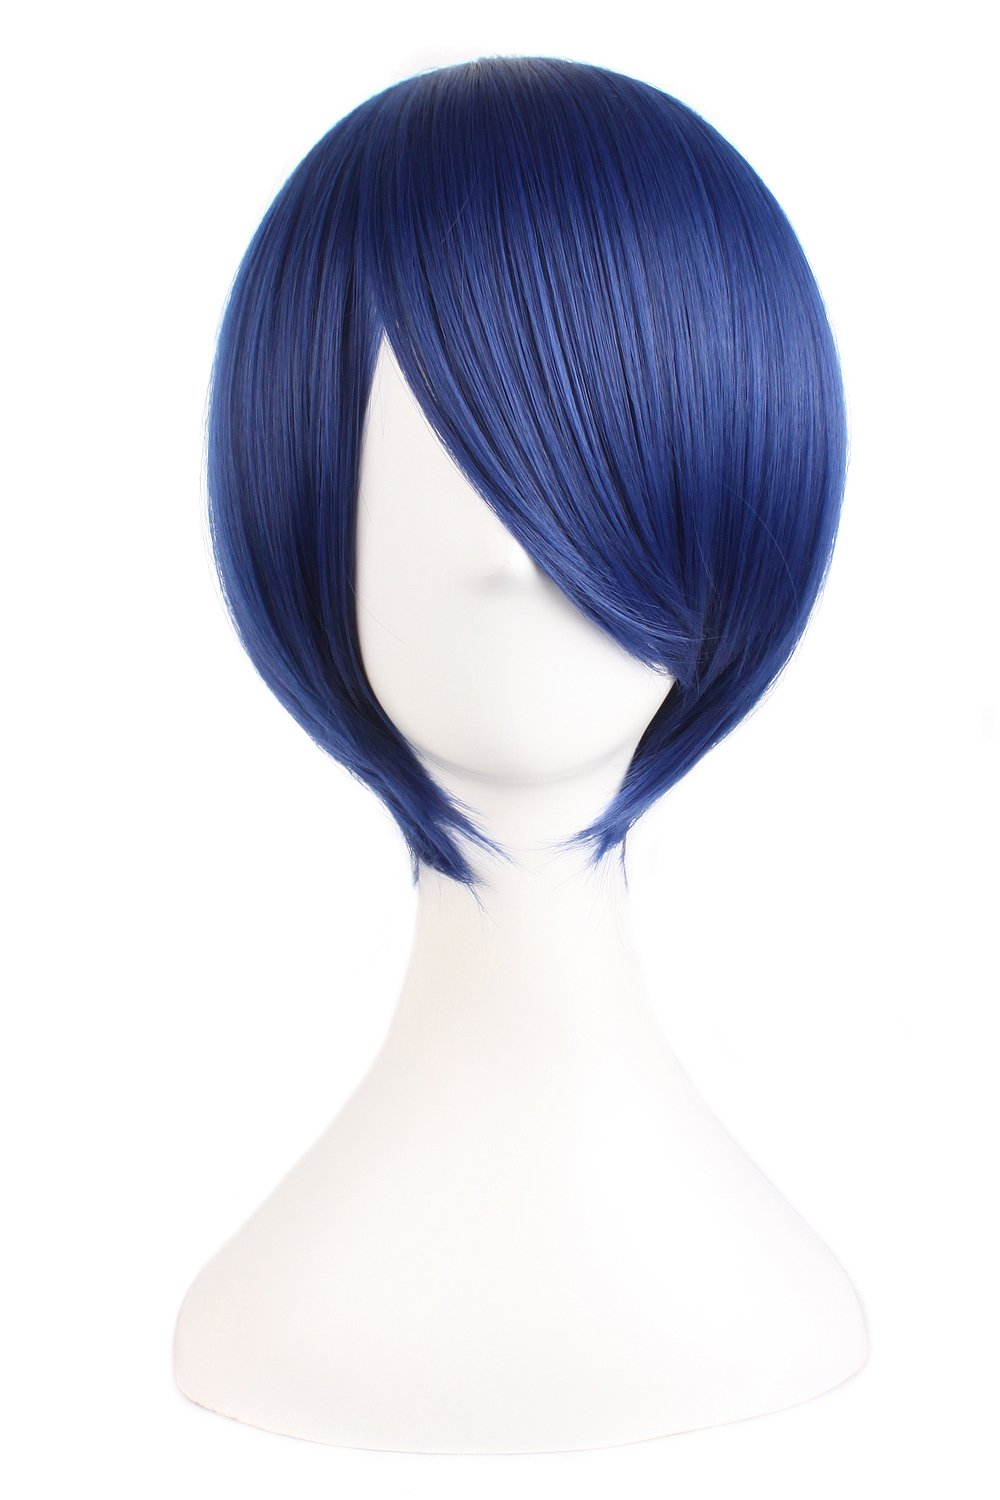 MapofBeauty 12''/30cm Short Straight Cosplay Costume Wig Party Wig (Mixed Blue) by MapofBeauty (Image #3)